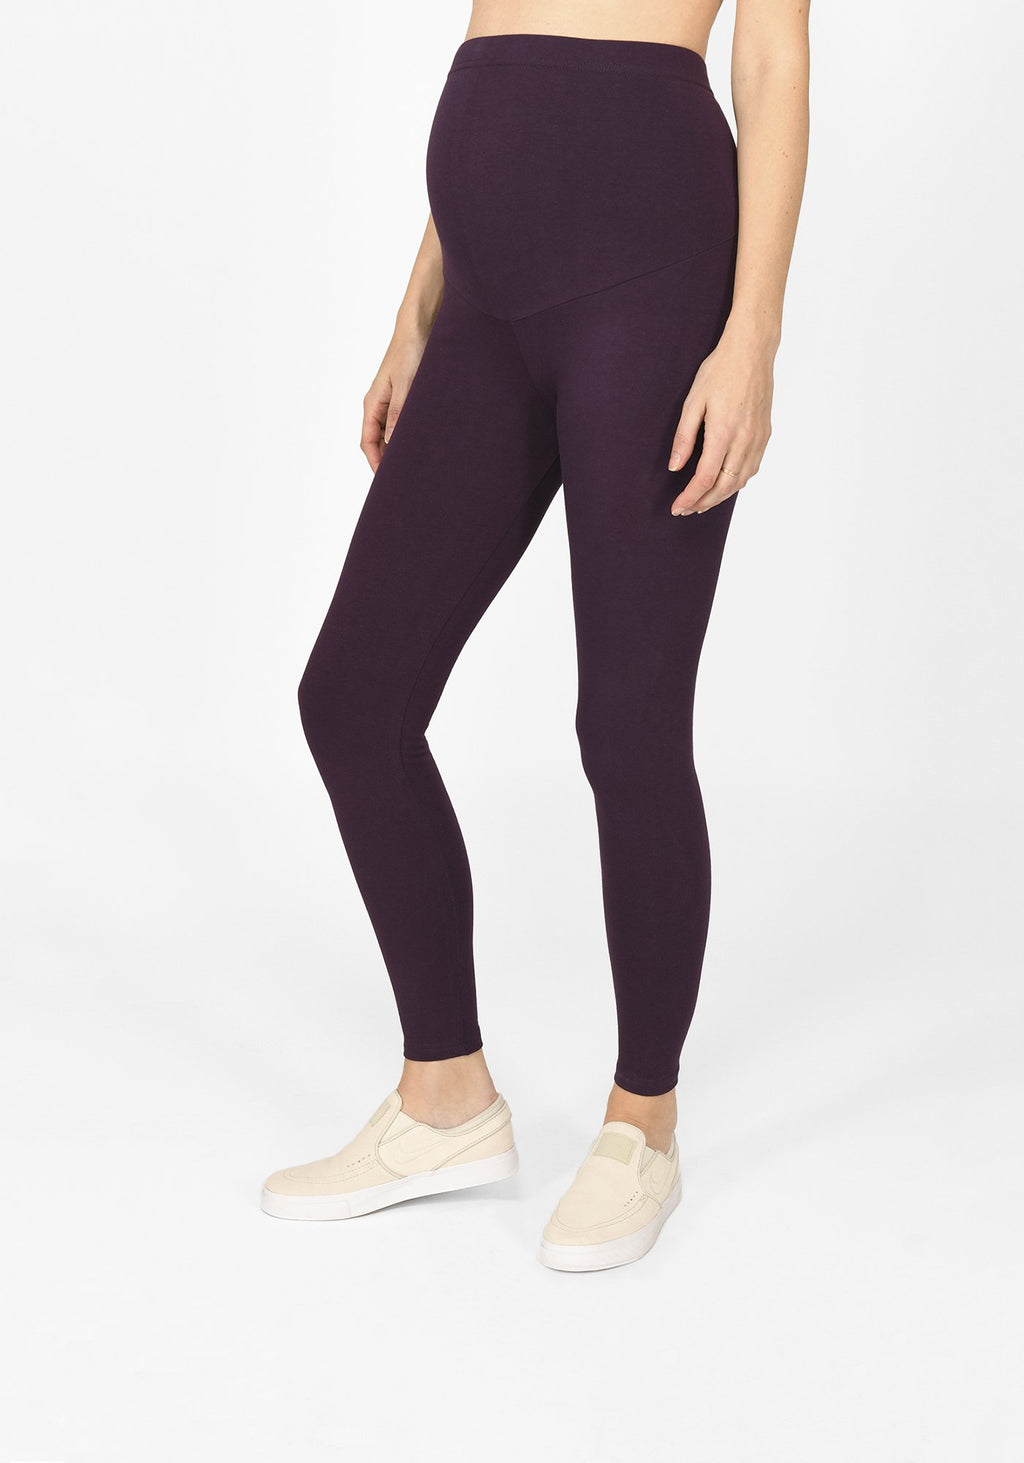 acai purple full length maternity leggings 1